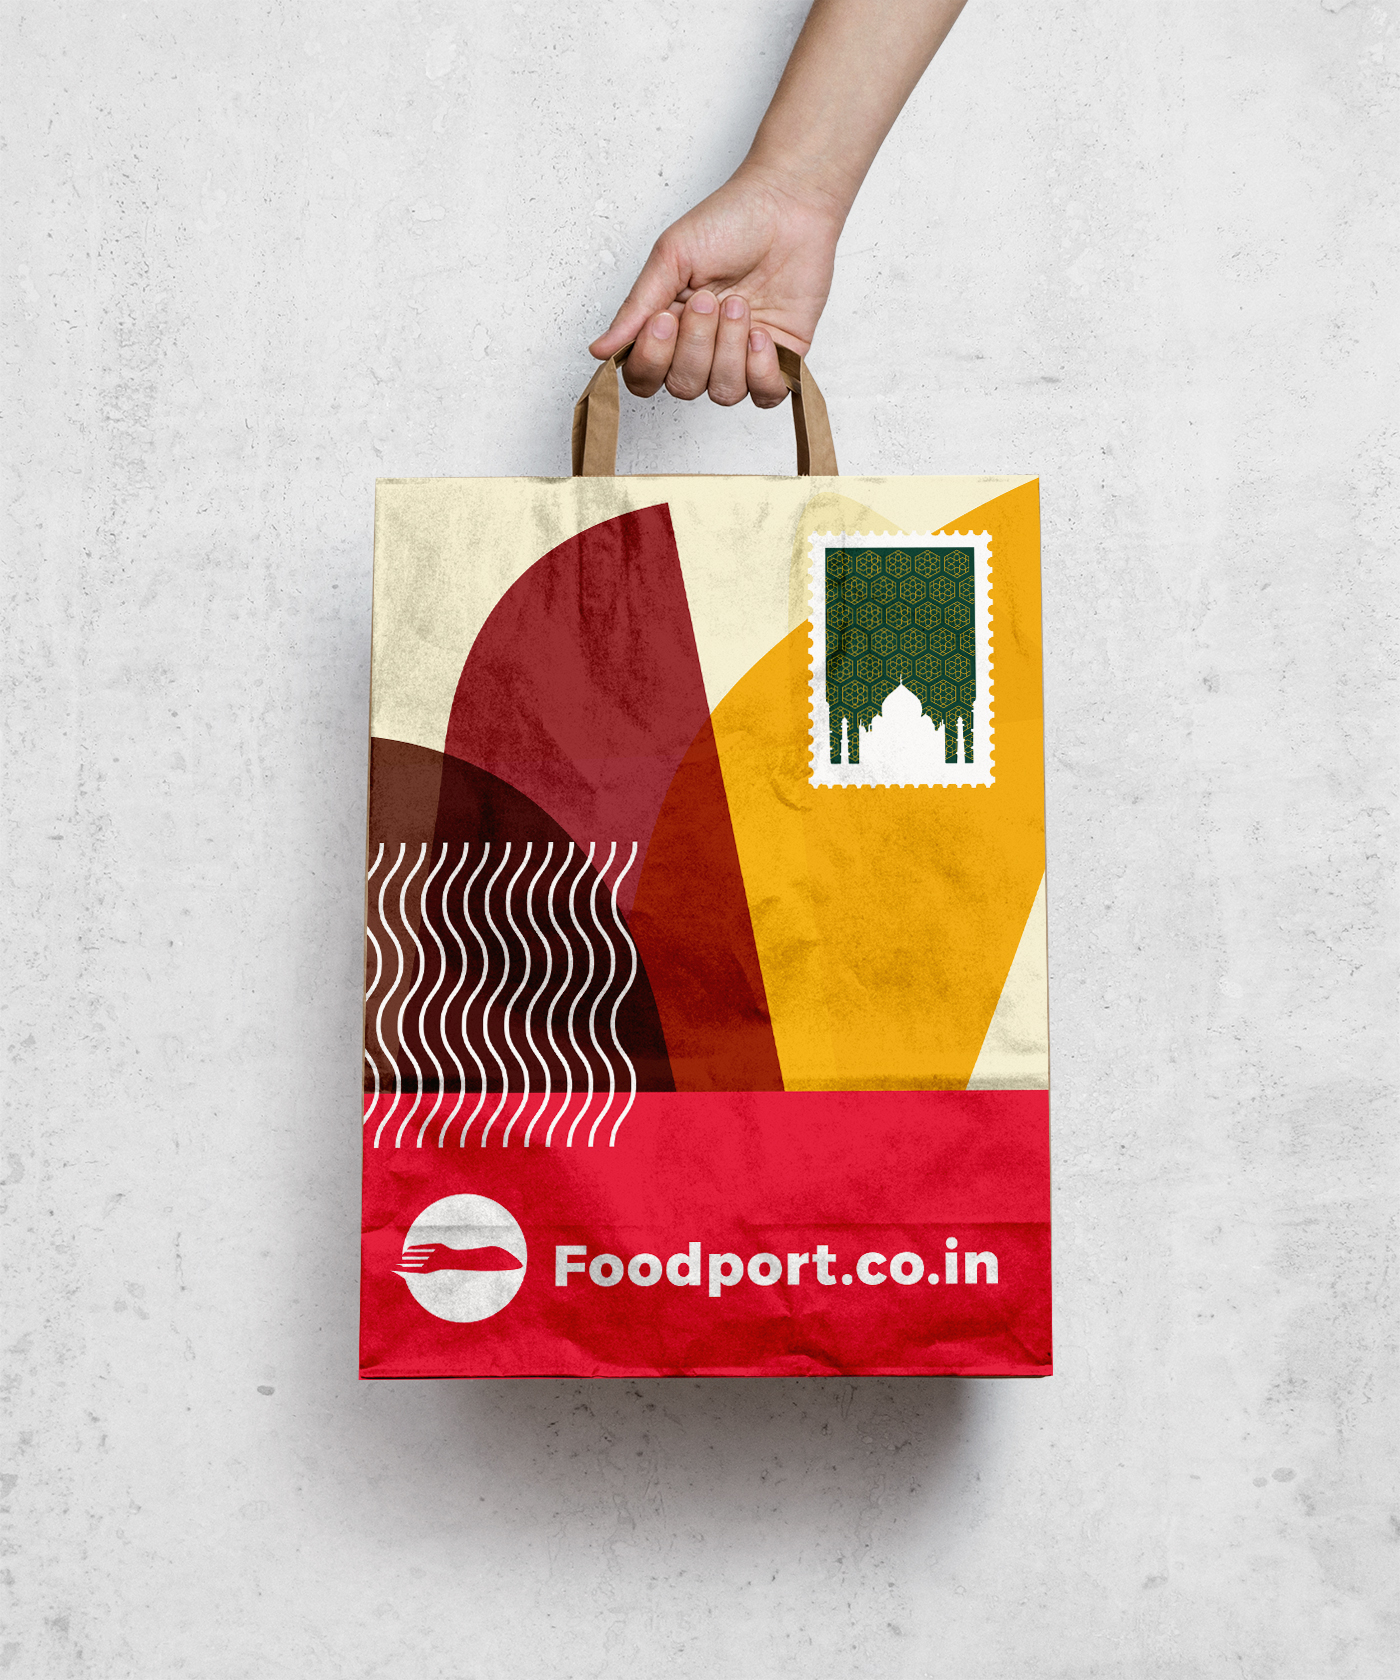 foodport_packaging_bag